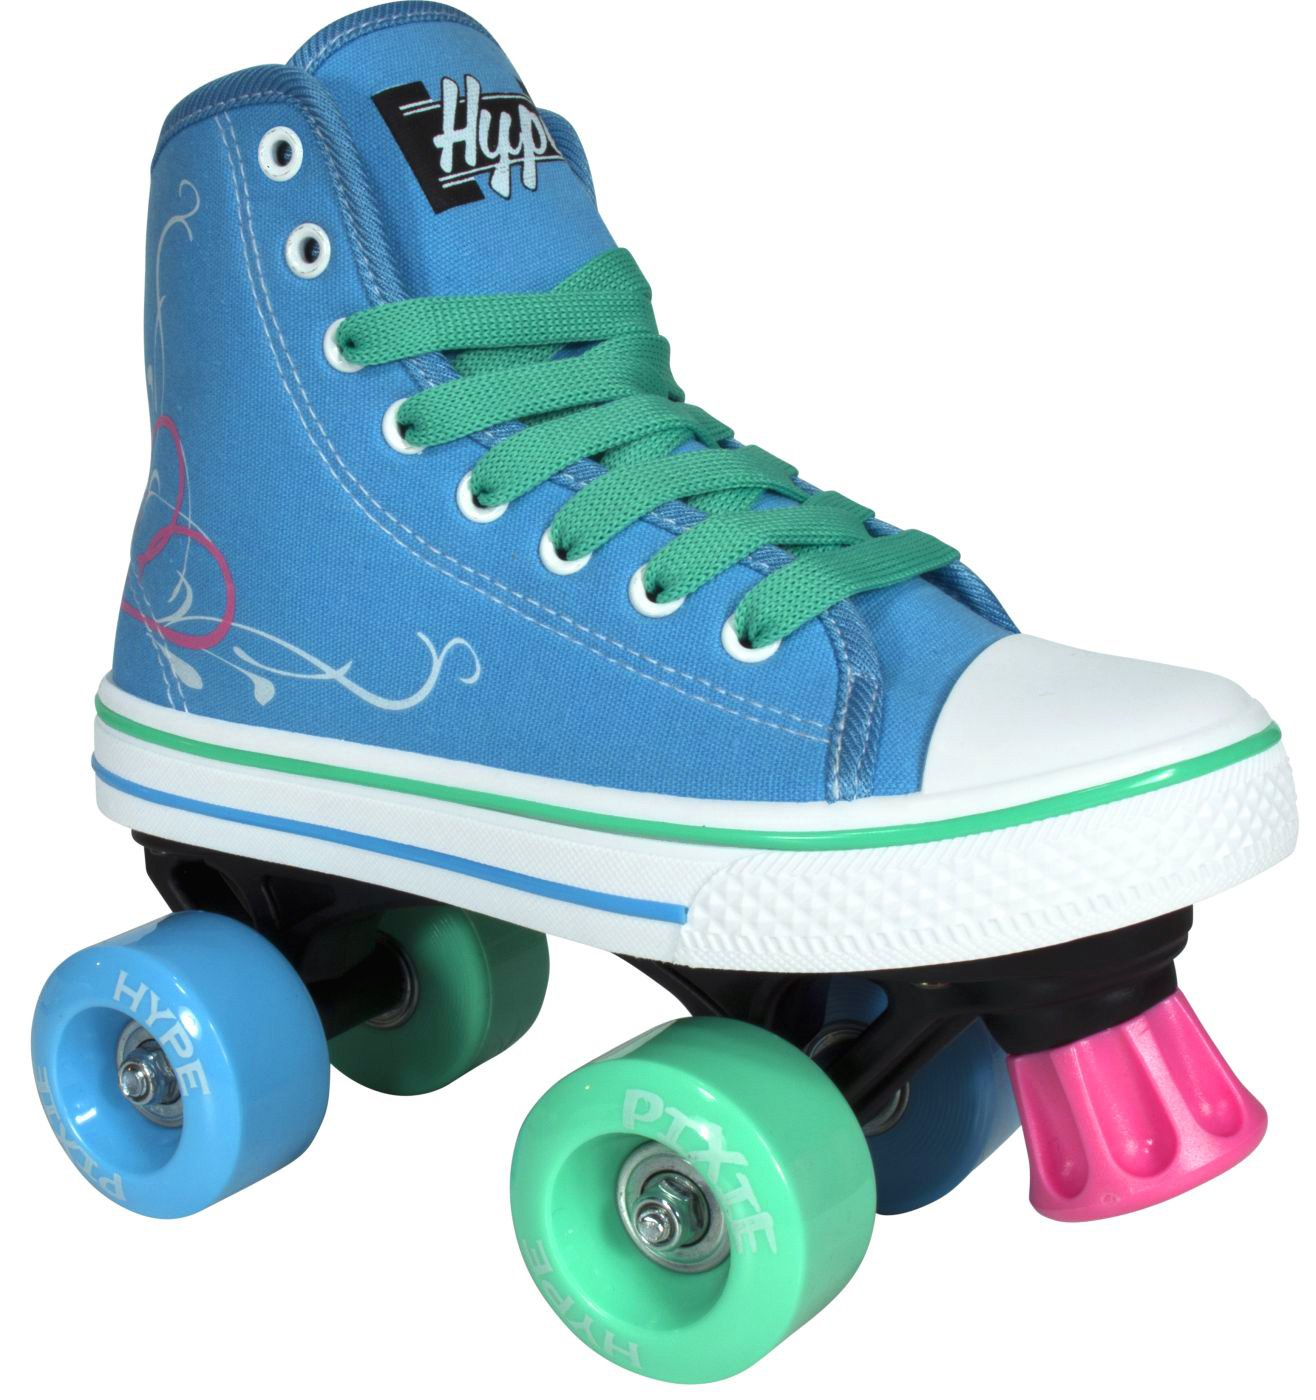 Roller Skates for Girls | HYPE Pixie Kid's Quad Roller Skates with High Top Shoe Style for Indoor / Outdoor Skating | Durable, Easy to Skate, Made for Kids (Blue, J13)